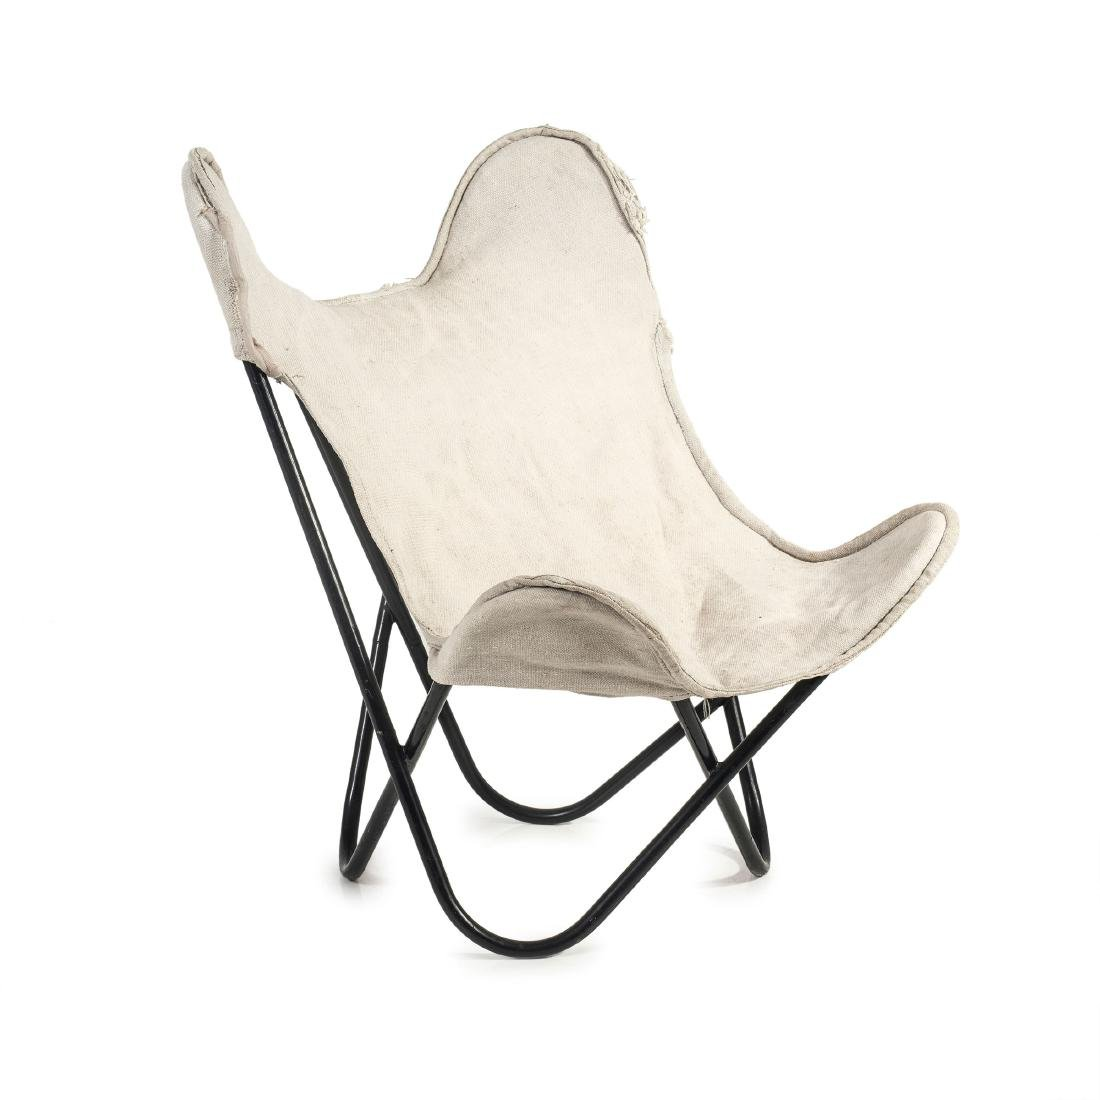 'Bat' - 'Butterfly' child's chair, 1938